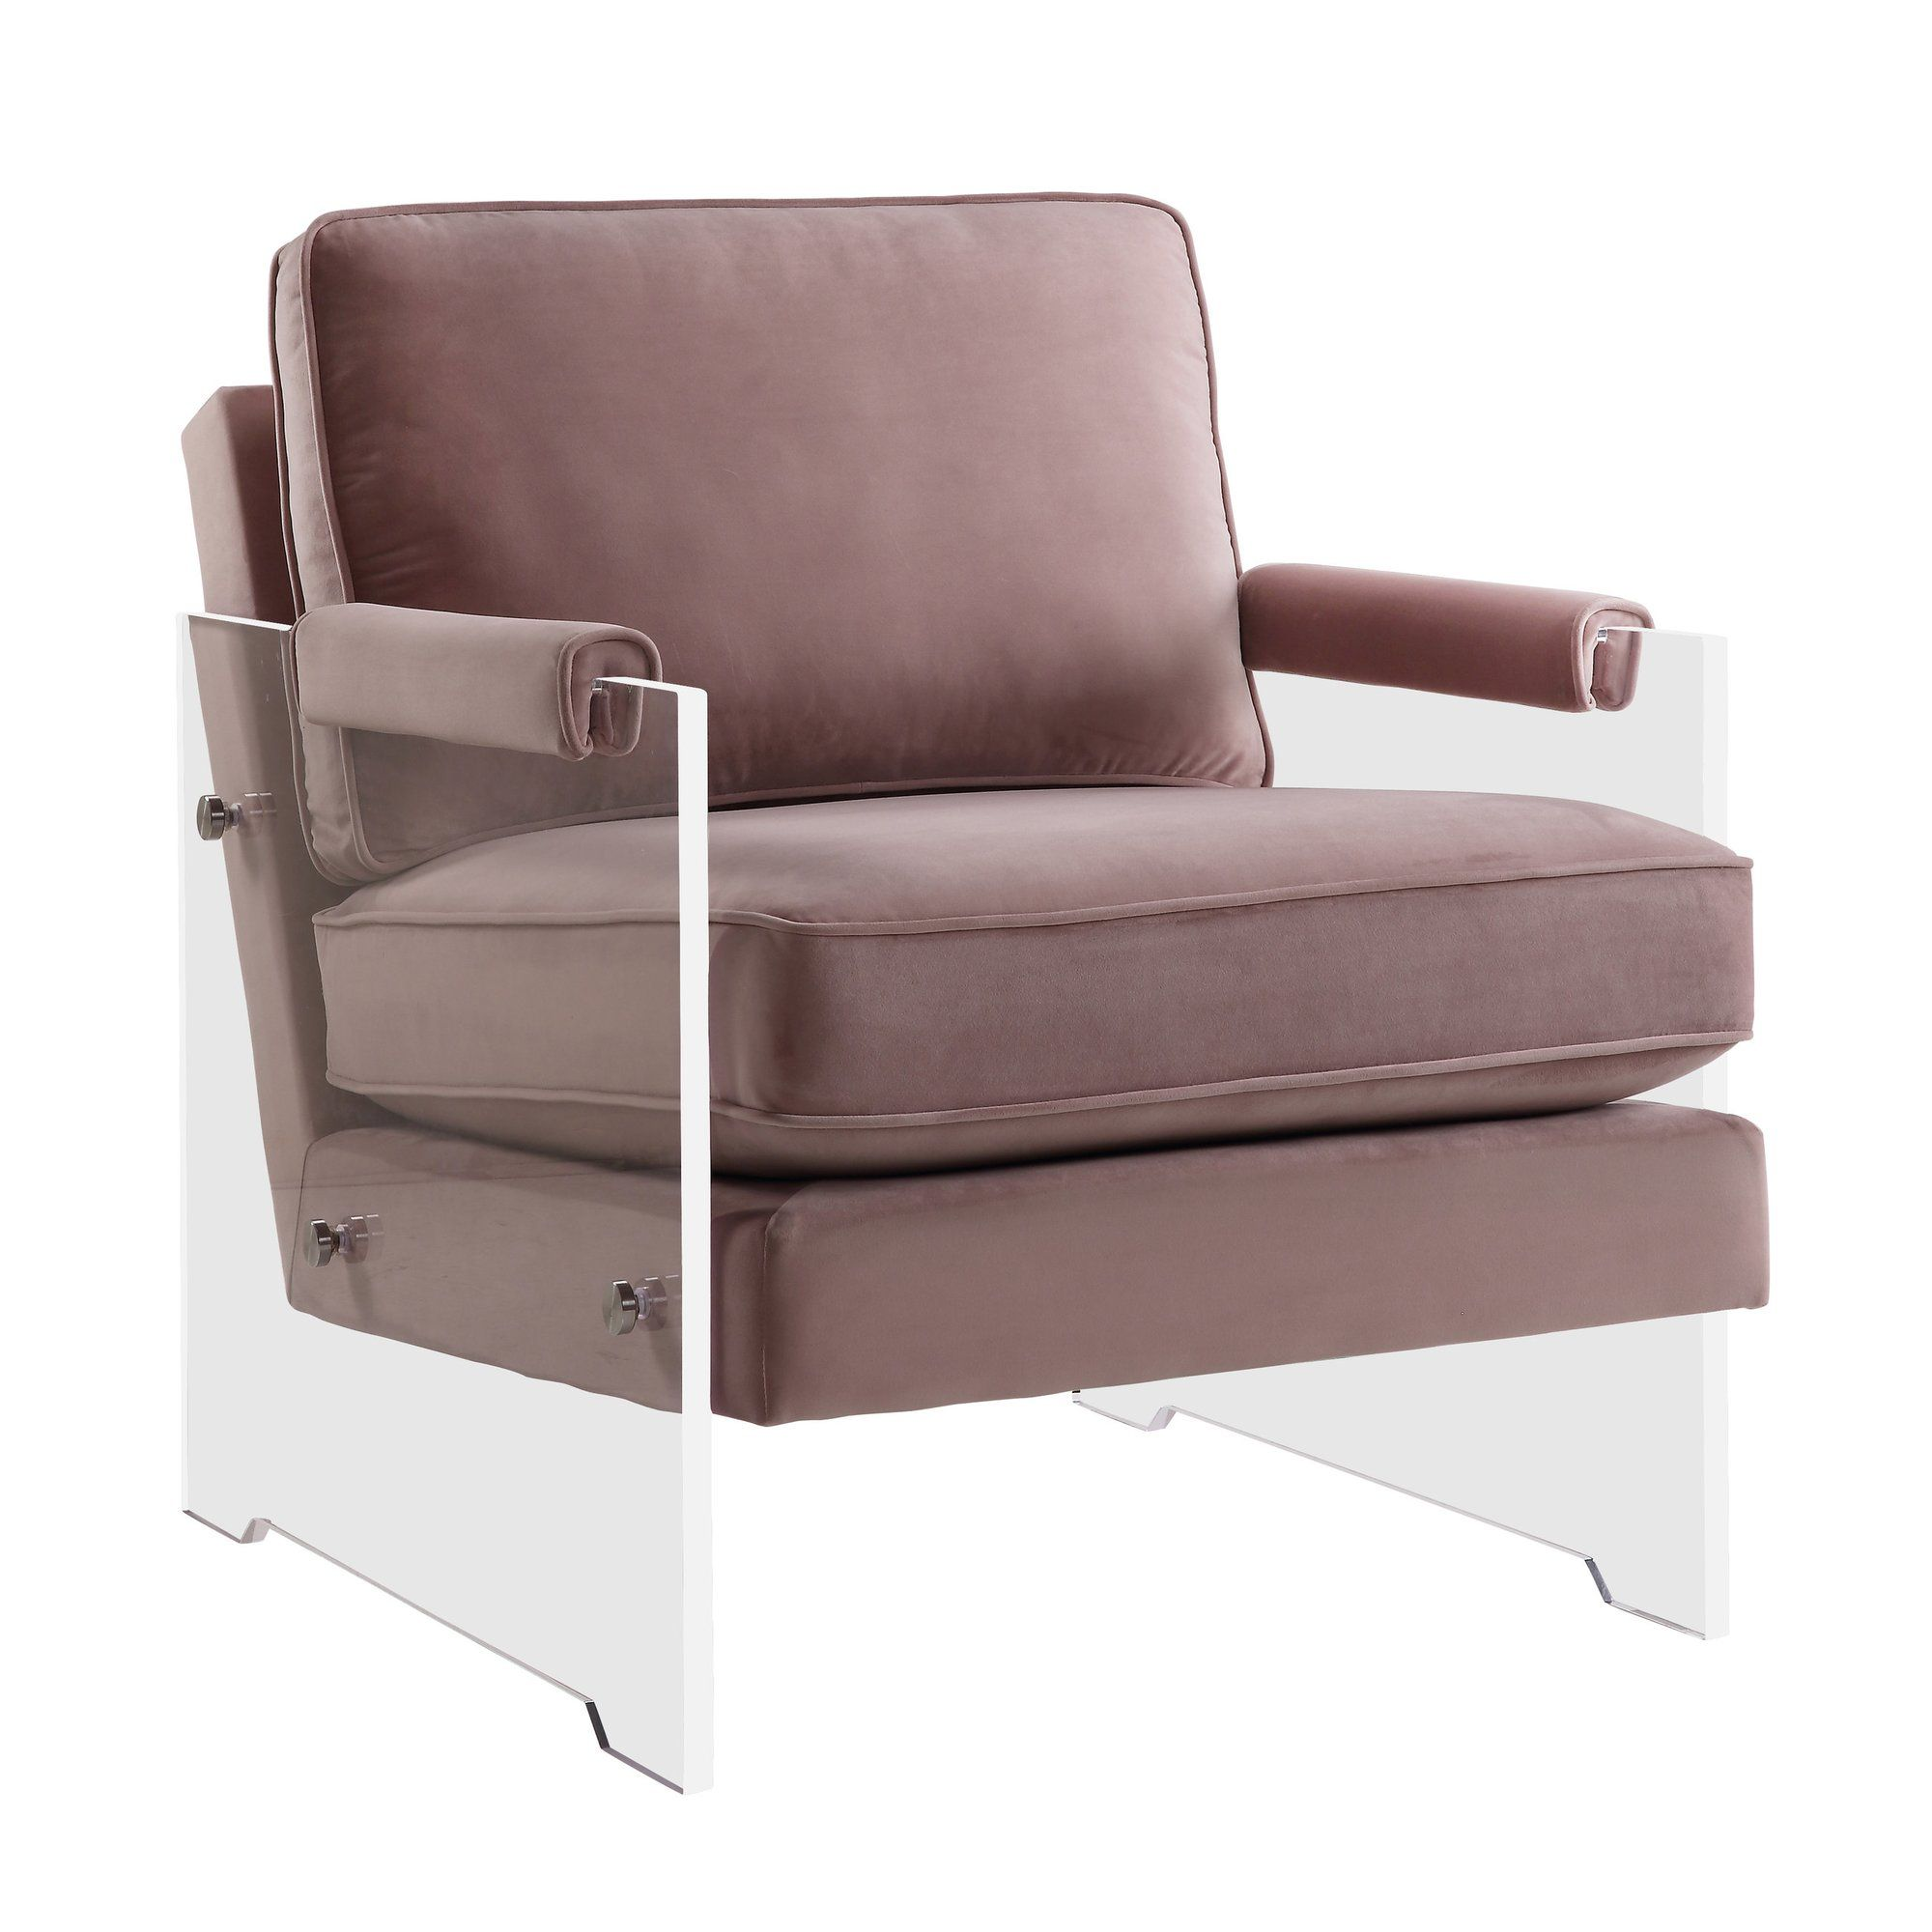 Rigby Armchair Lucite chairs, Furniture, Accent chairs